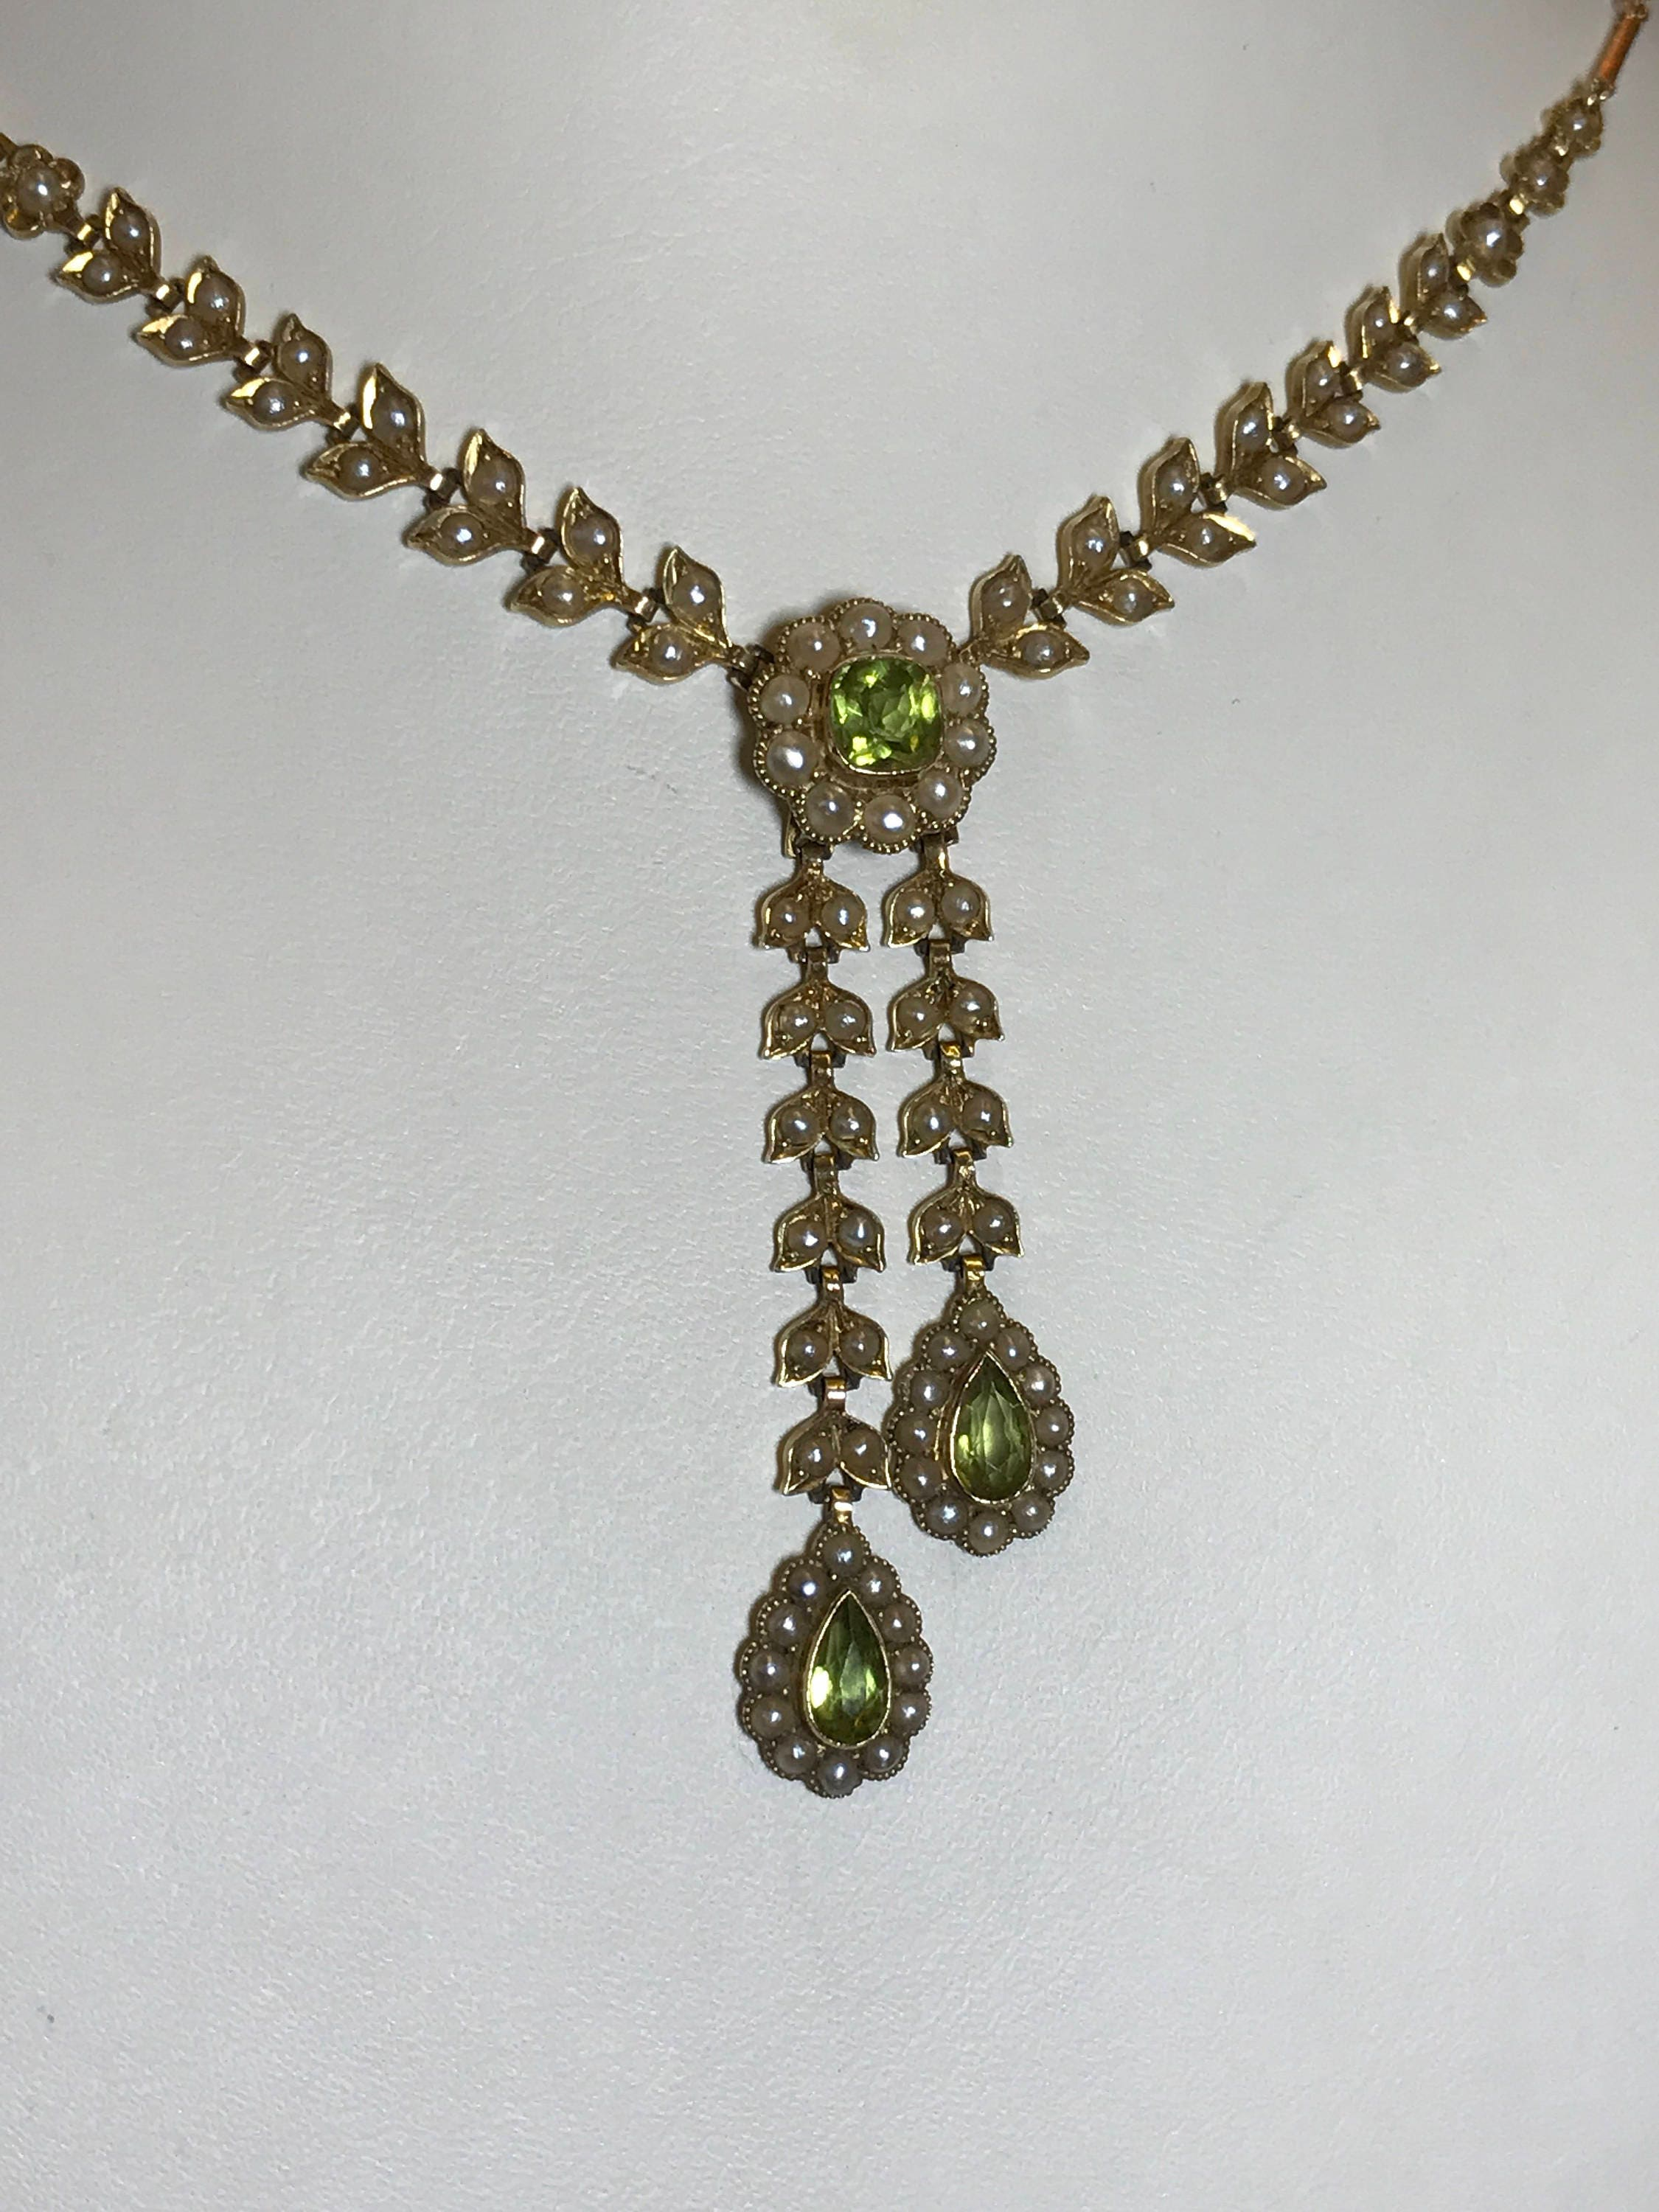 Victorian antique 15k carat gold seed pearl negligee necklace pendant olivine peridot poss edwardian